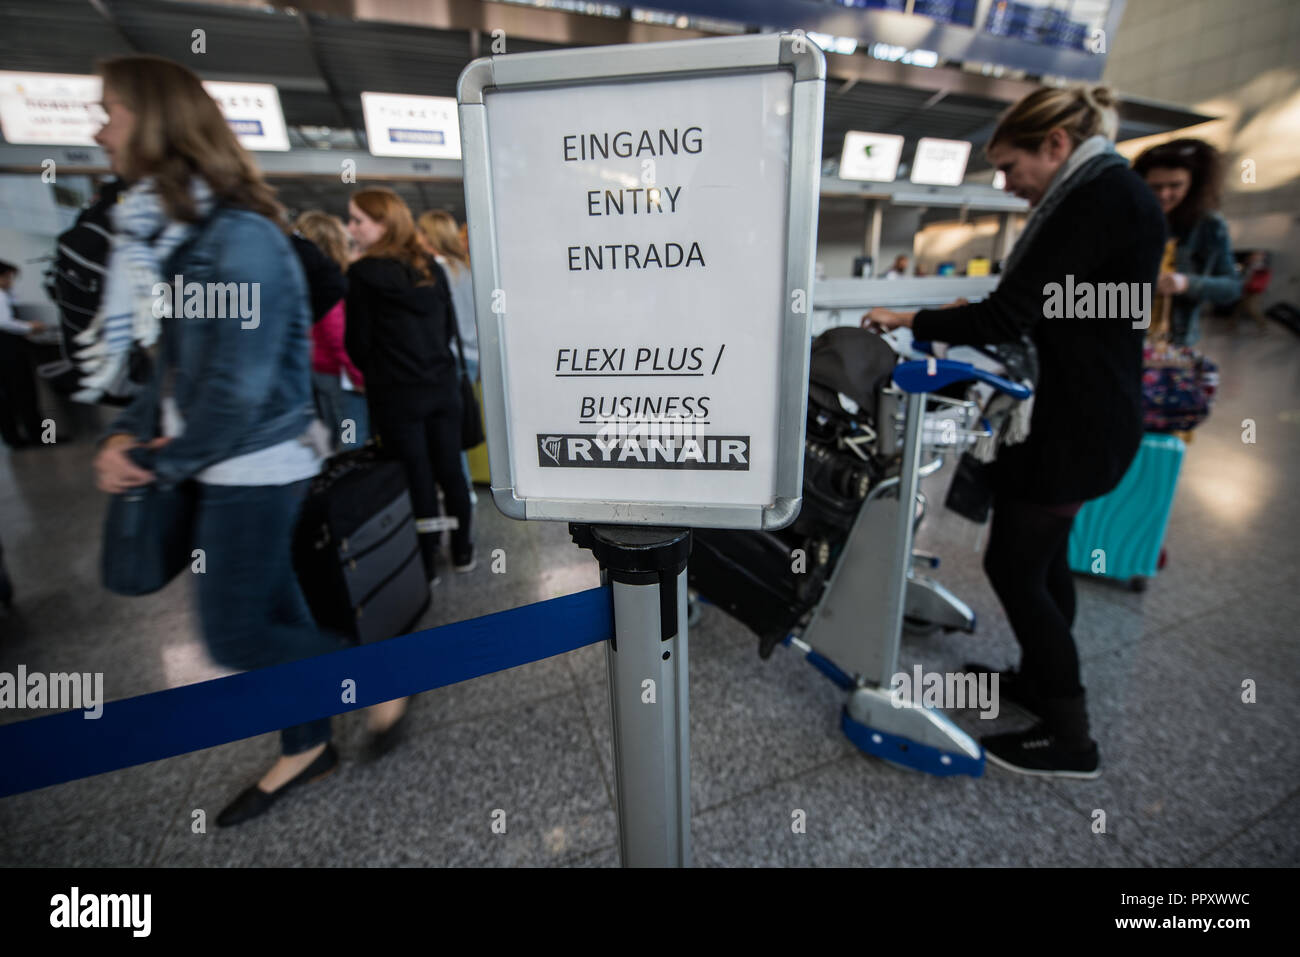 28 September 2018, Hessen, Frankfurt_Main: Passengers line up at a Ryanair counter. Trade unions in several European countries have called for strikes at low-cost airline Ryanair. In Germany, the pilots of the Cockpit Association (VC) and the flight attendants organized at Verdi participate. Photo: Andreas Arnold/dpa - Stock Image